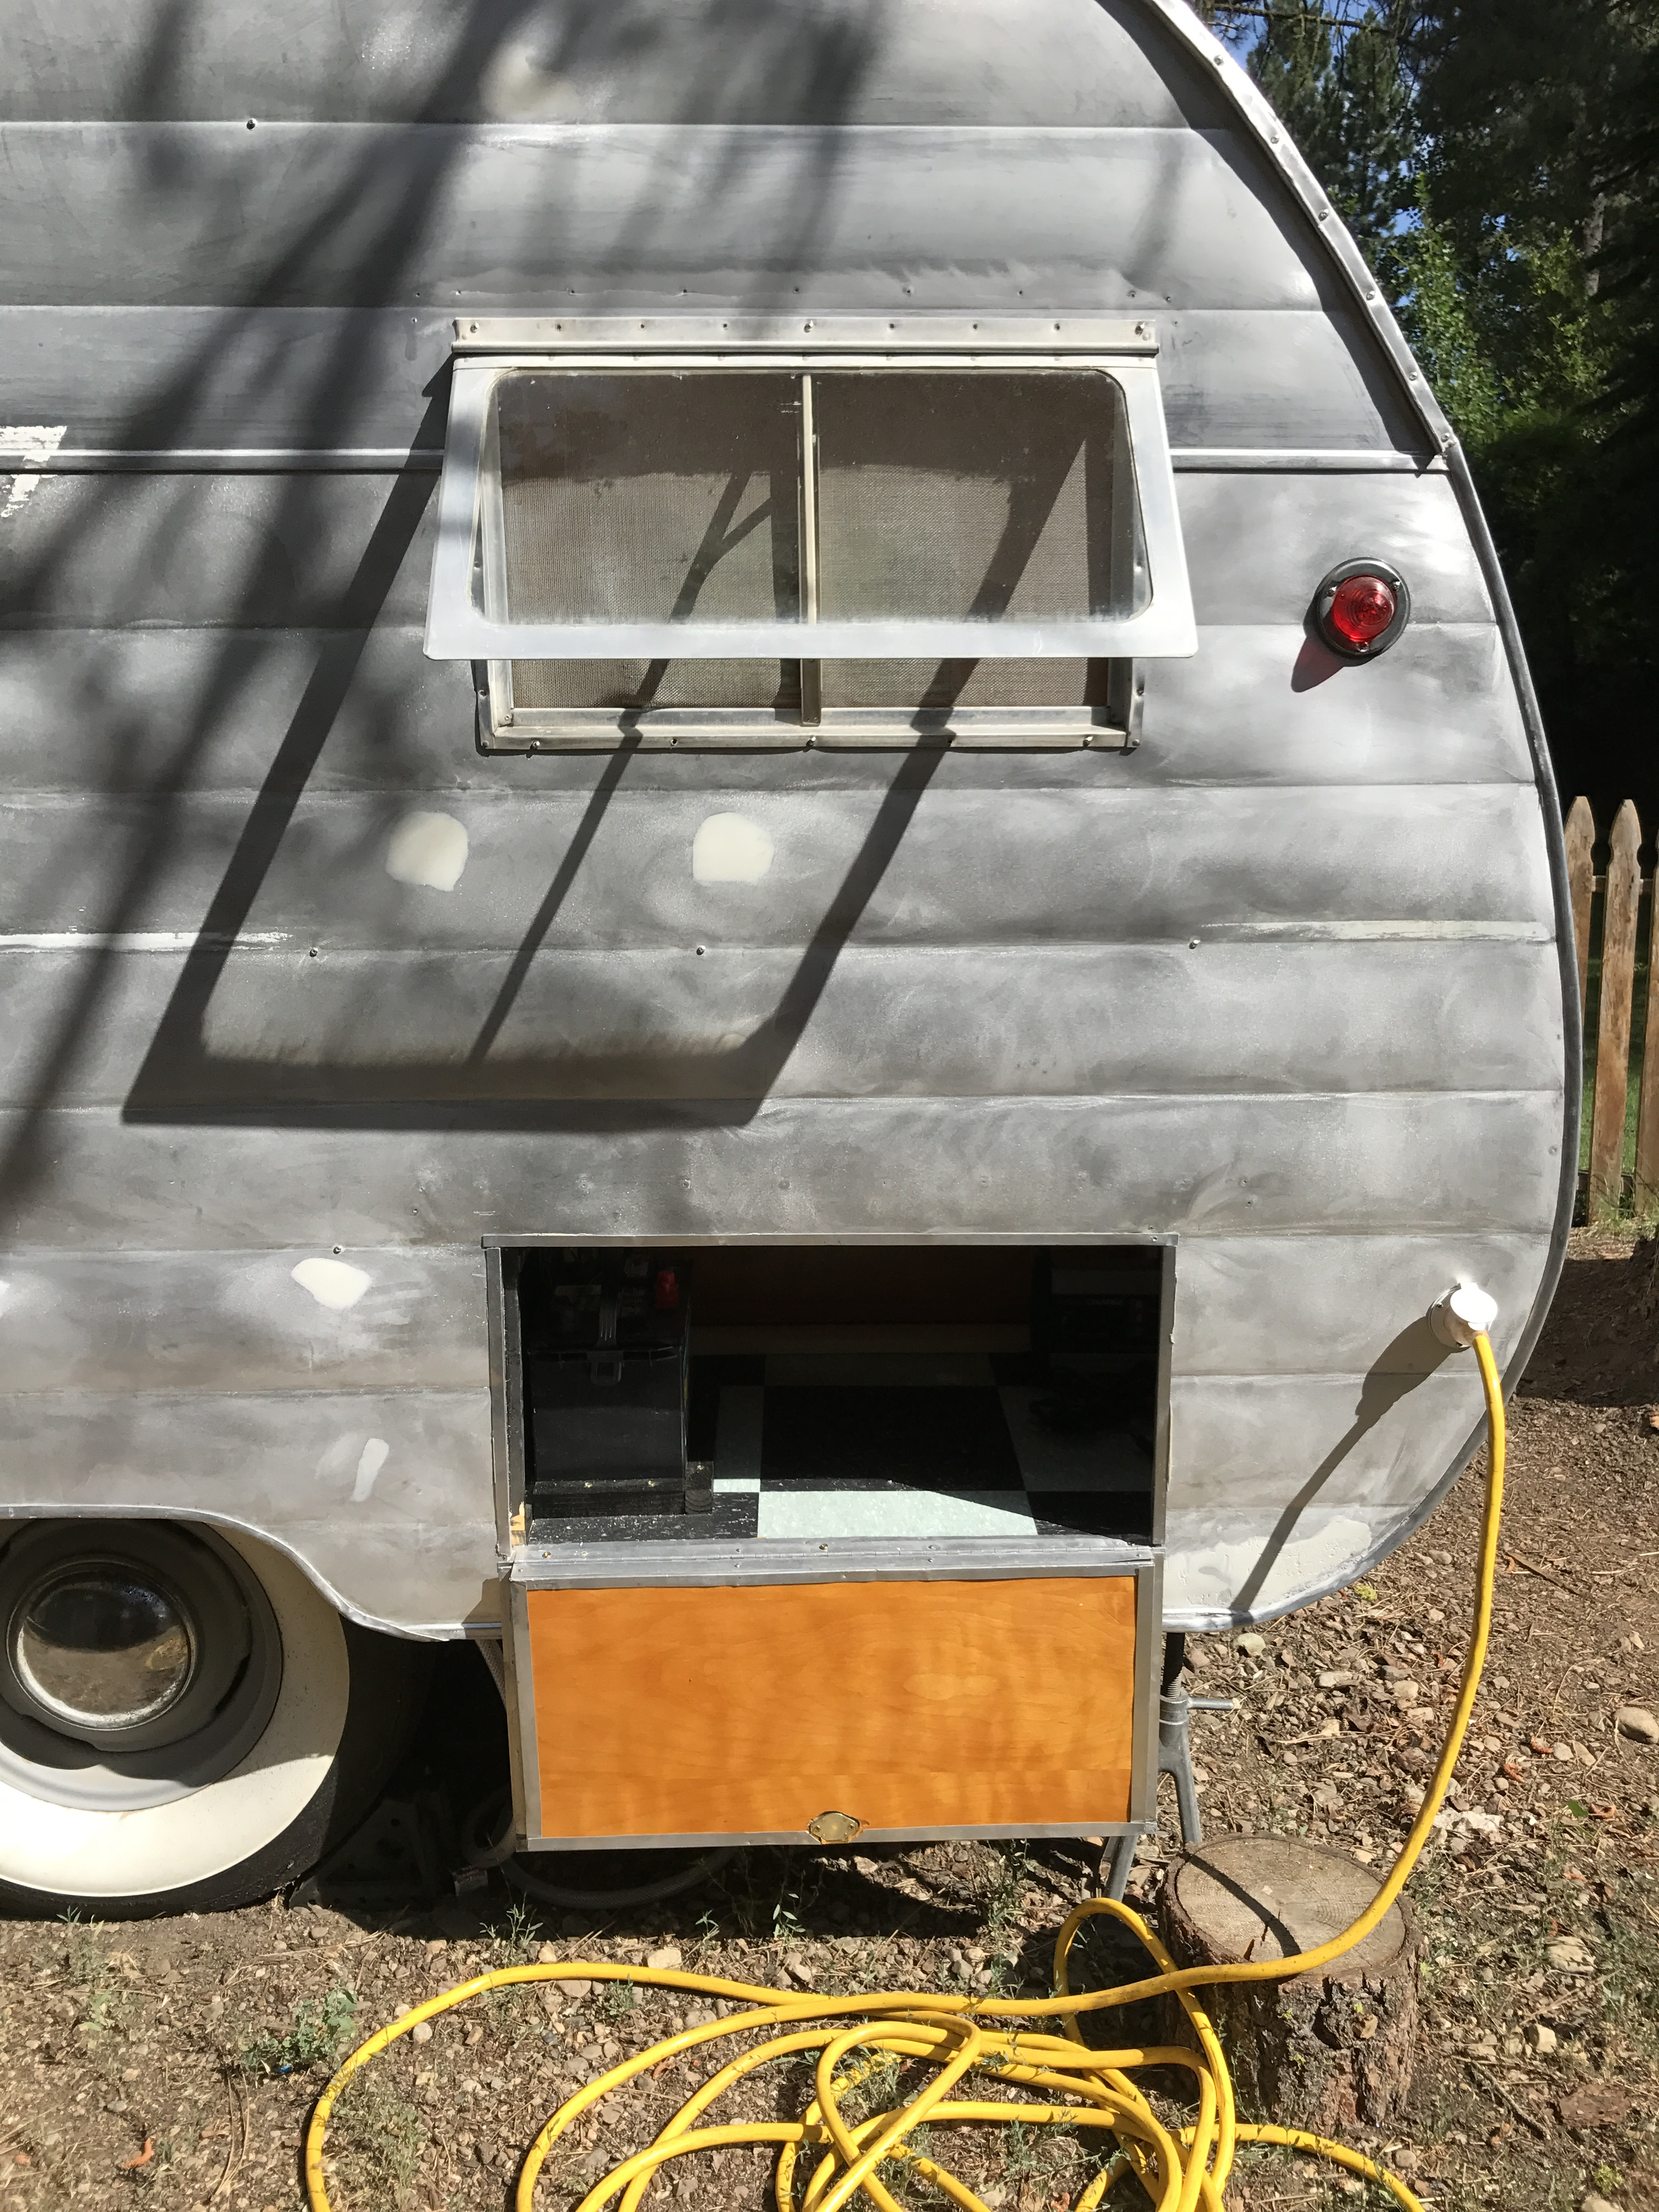 How to wire your vintage camper trailerLip Gloss and Power Tools